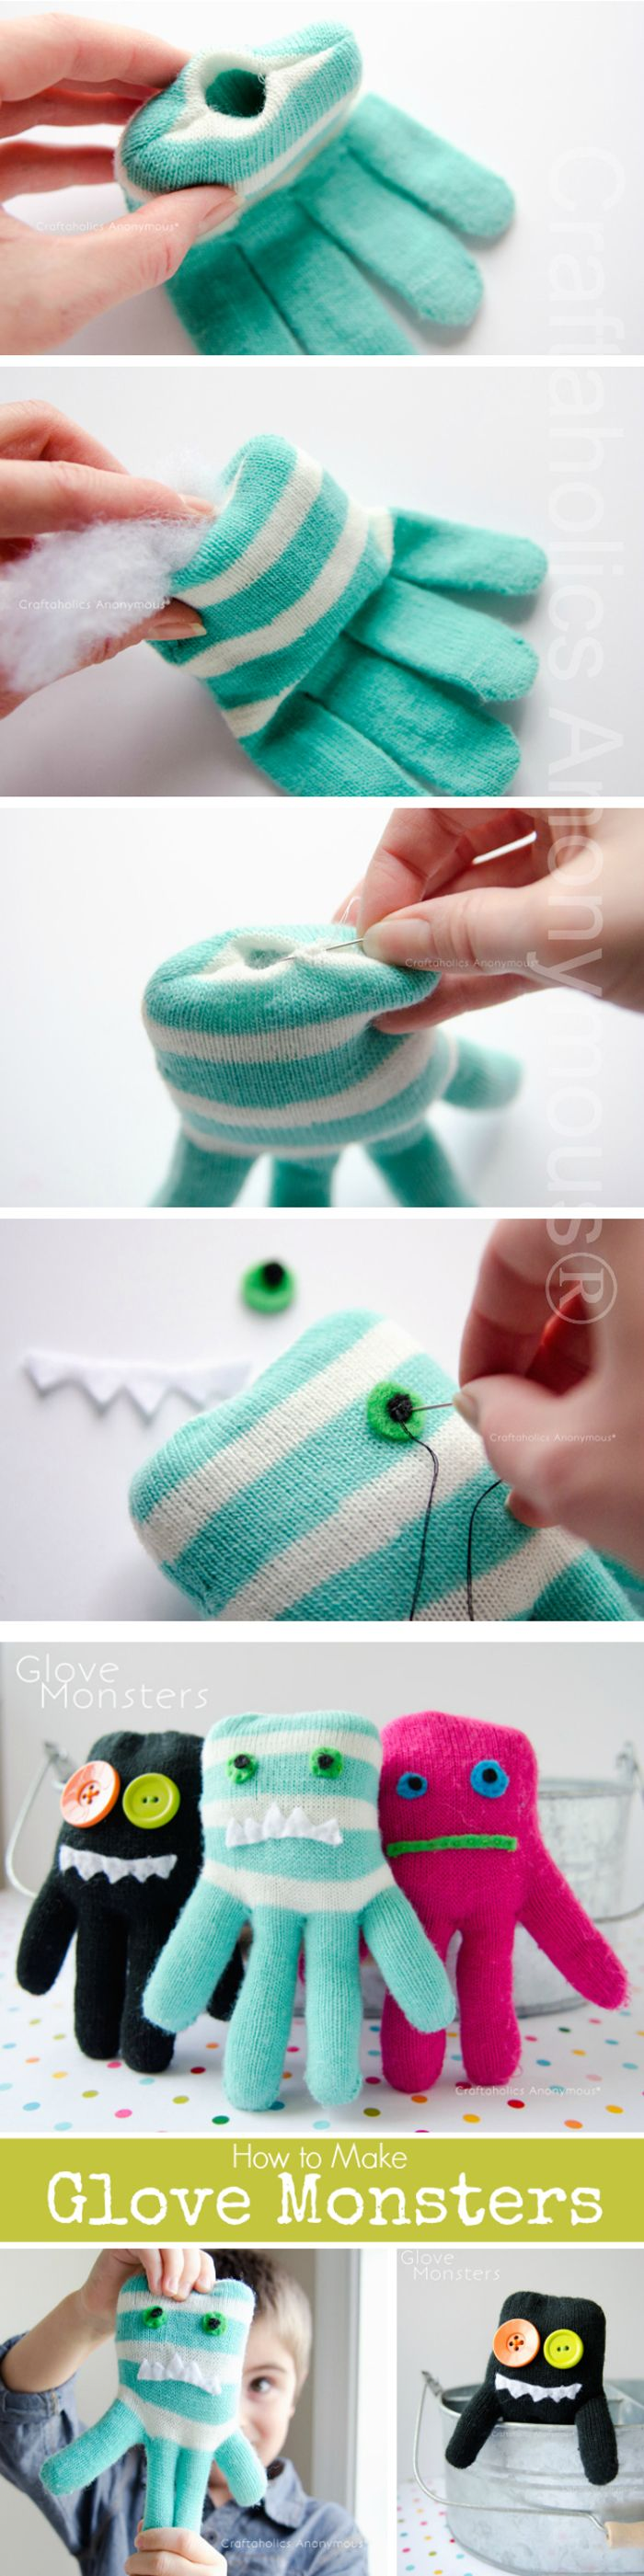 Glove Monsters - looks easy enough for even someone with no sewing skills like me